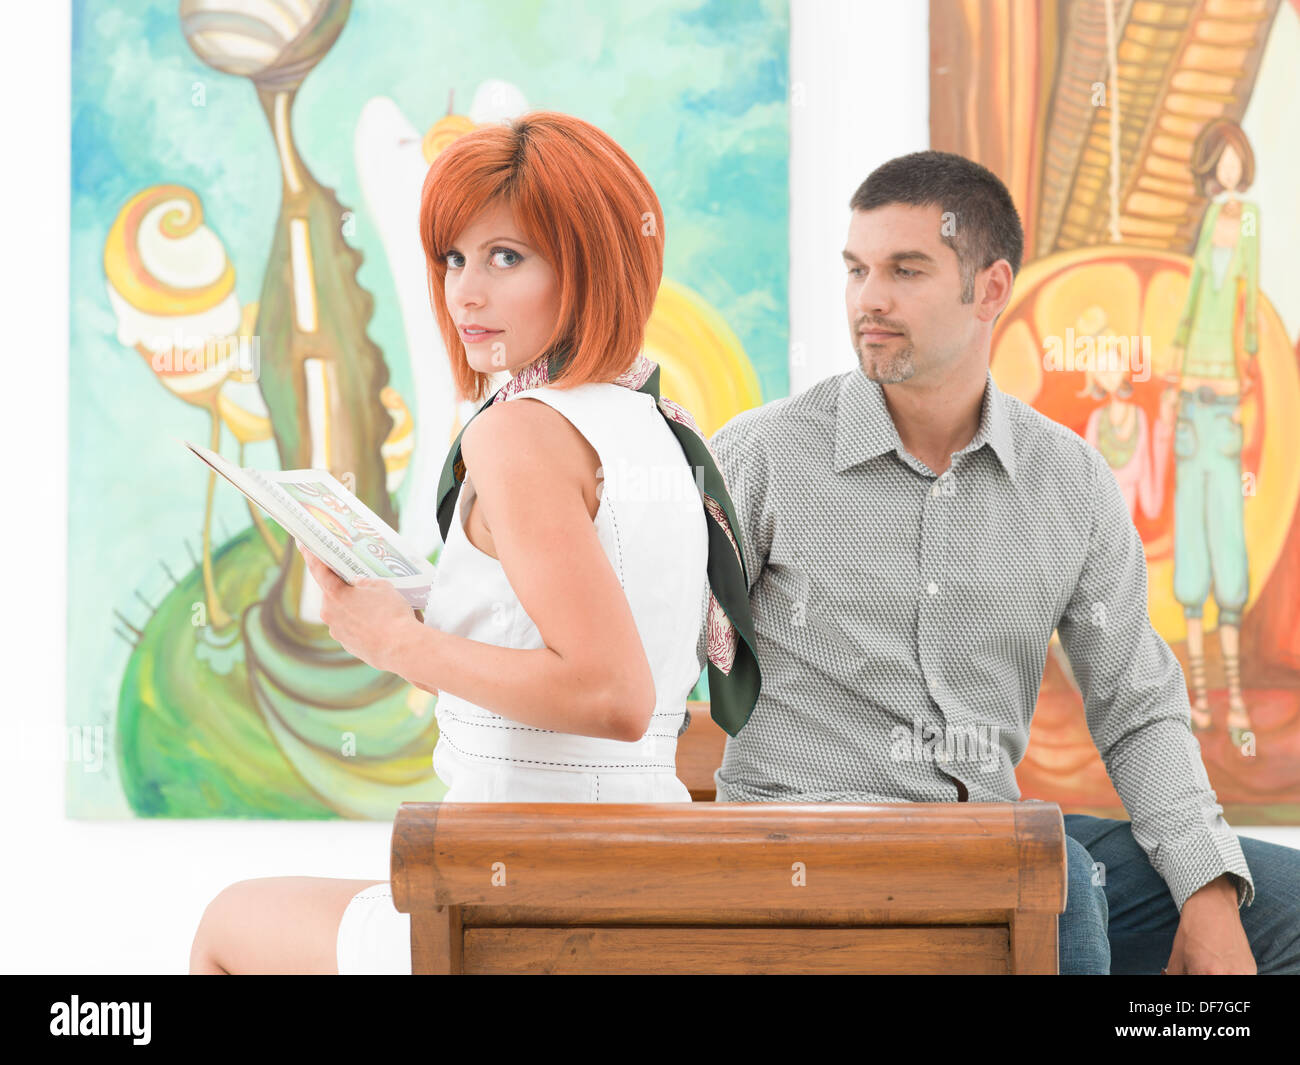 close-up of young caucasian man sitting on a wooden bench next to a beautiful redhead woman, with colorful artworks on background - Stock Image